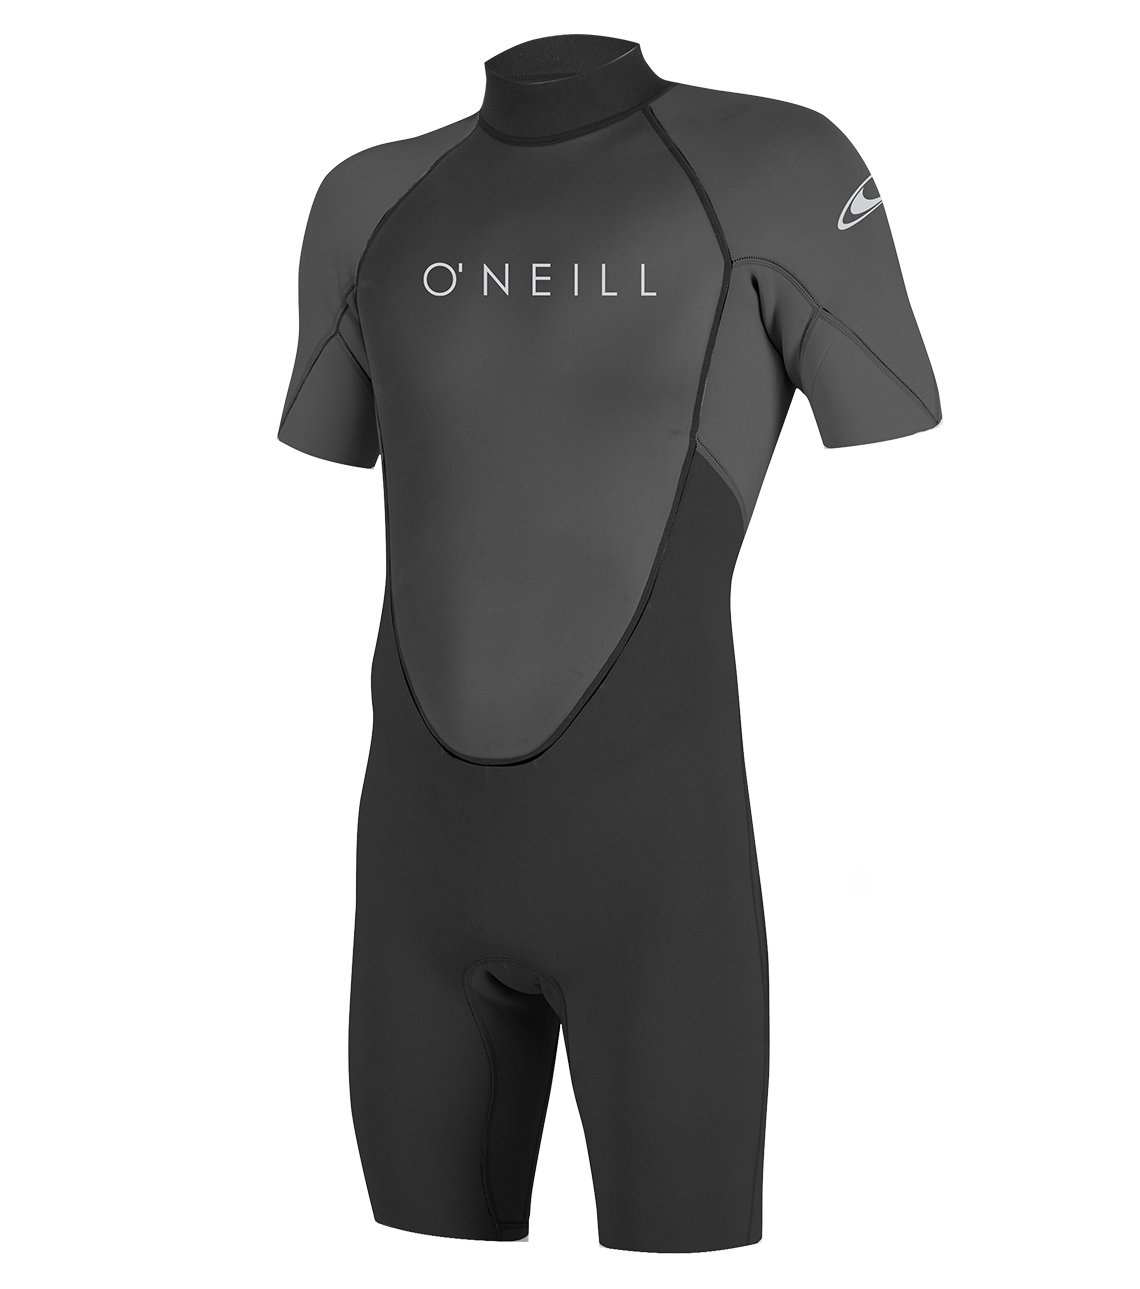 O'Neill Men's Reactor-2 2mm Back Zip Short Sleeve Spring Wetsuit, Black/Graphite, Small